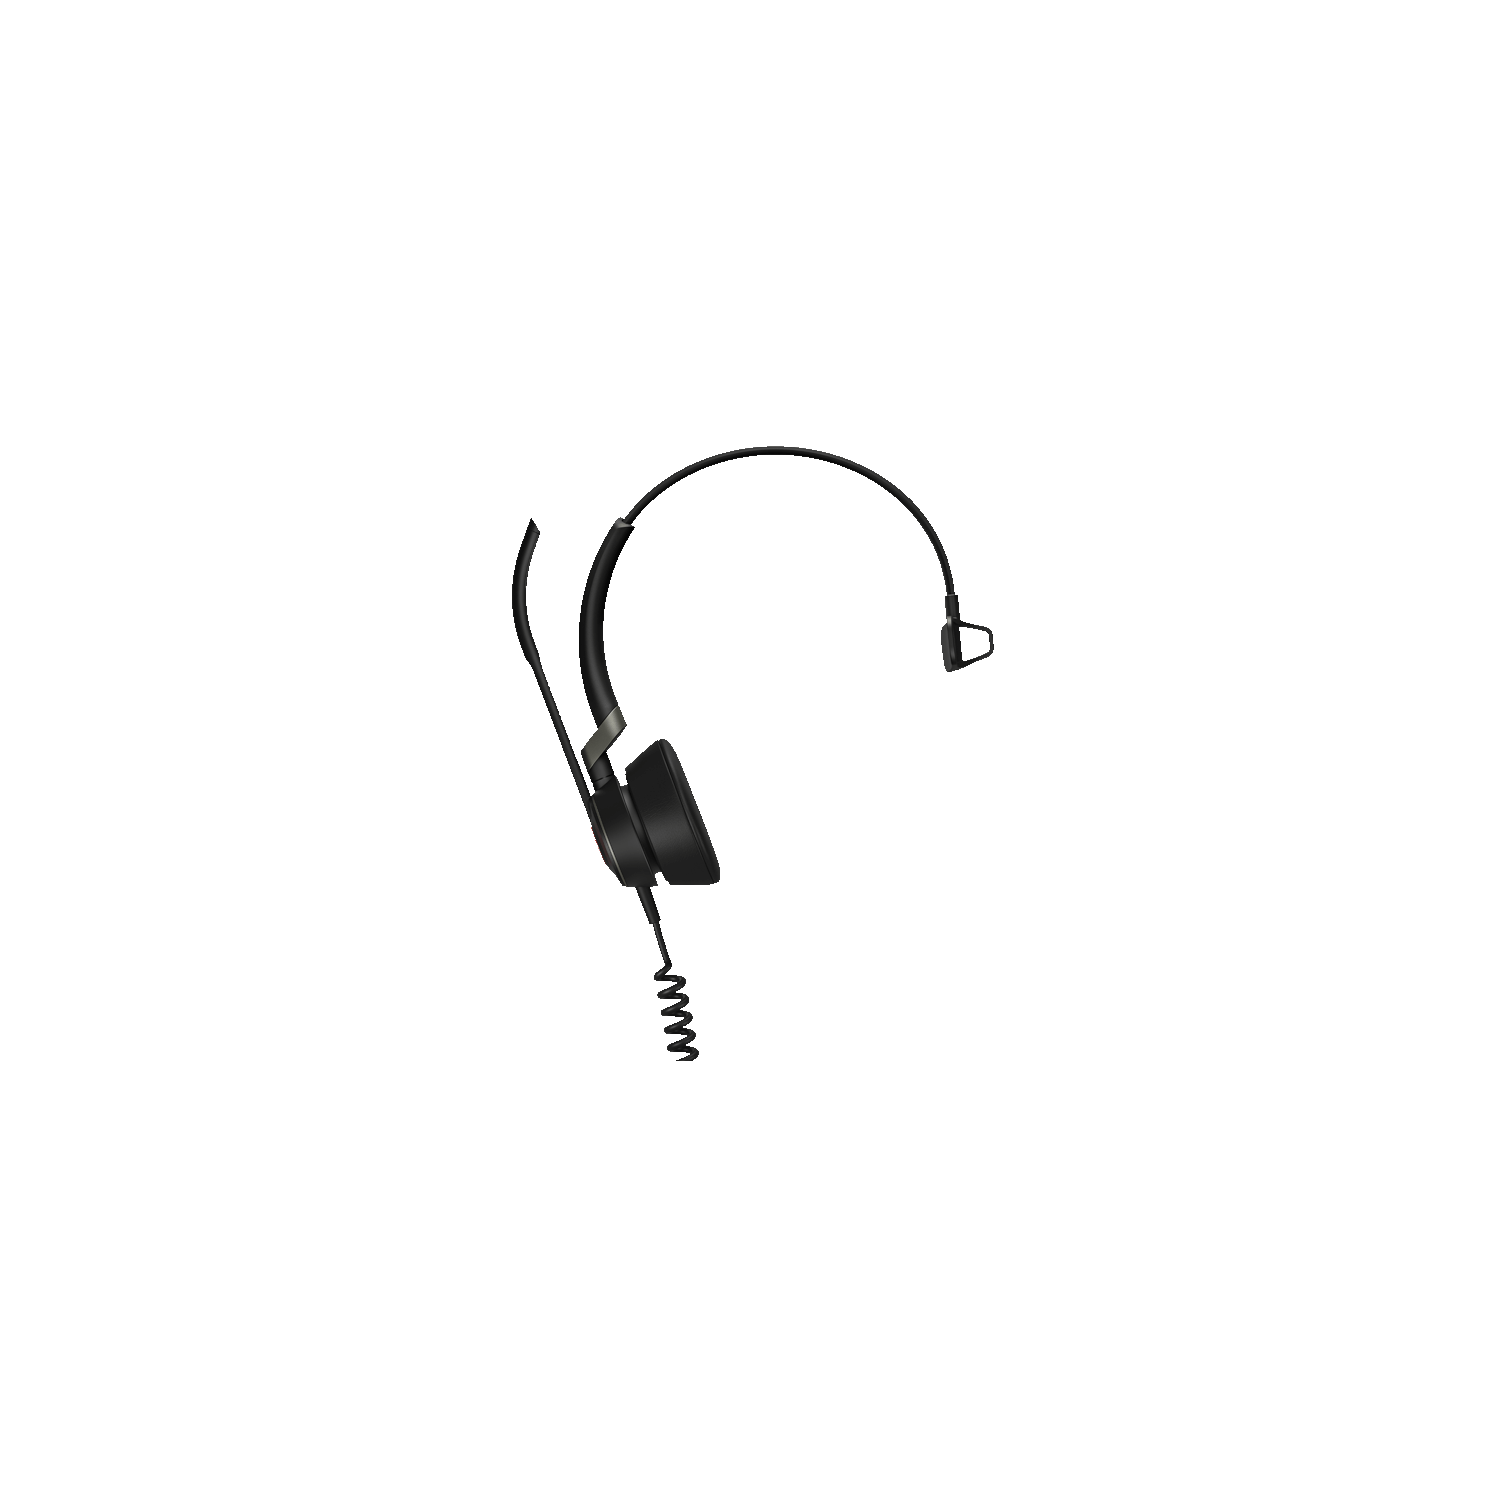 Jabra Engage 50 Stereo On Ear Noise Cancelling Headset With Mic Black 5099 610 189 Best Buy Canada